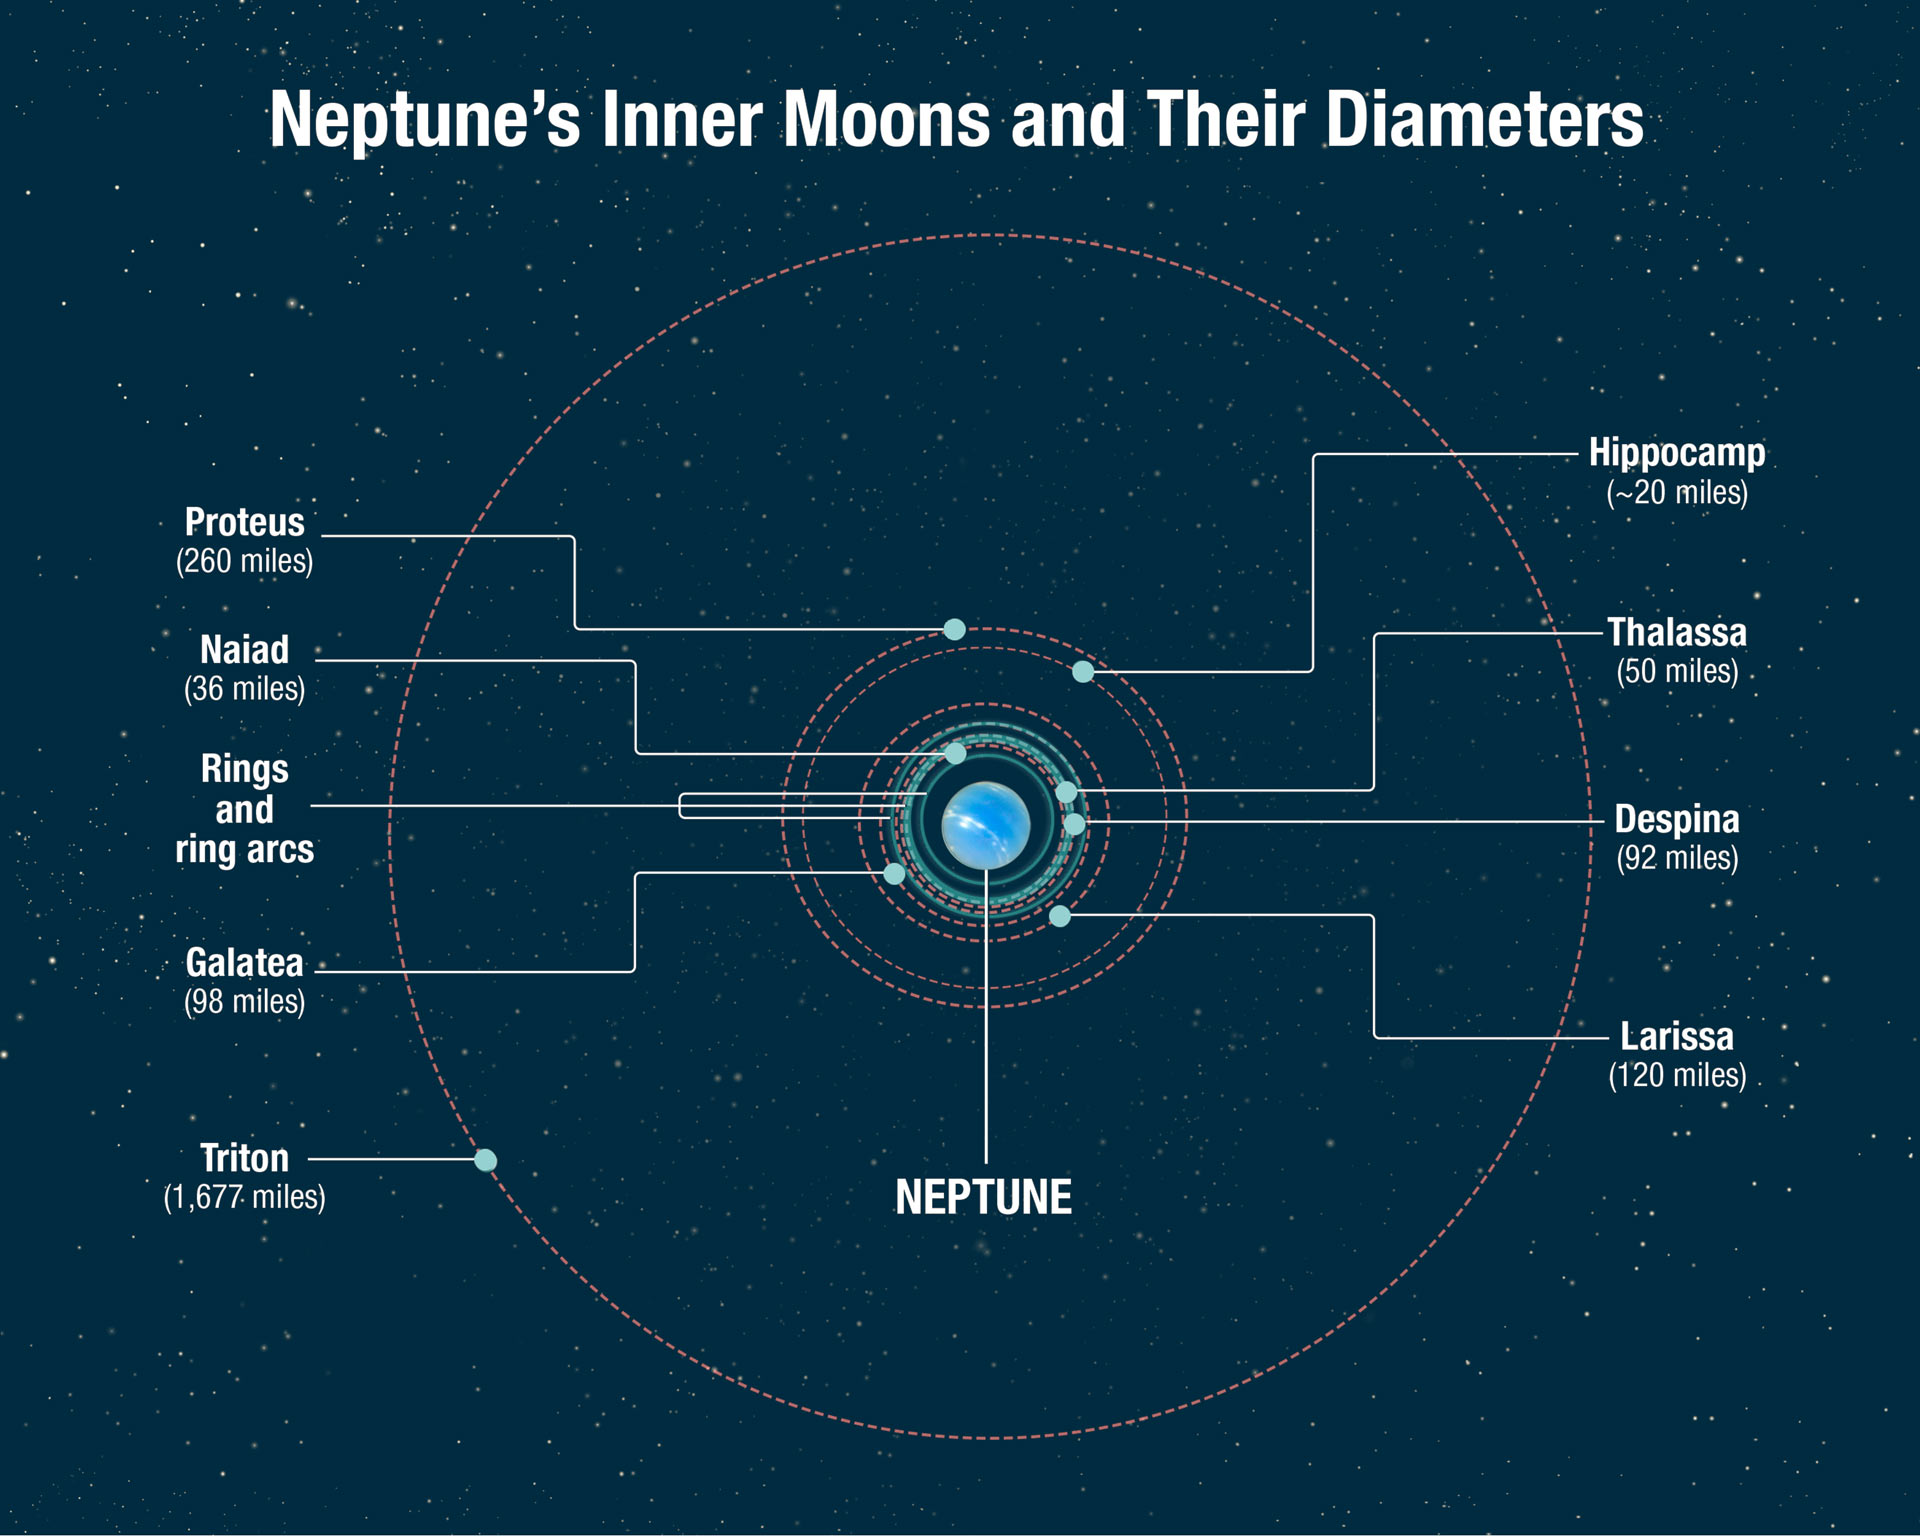 Hubble helps uncover origin of Neptune's smallest moon Hippocamp